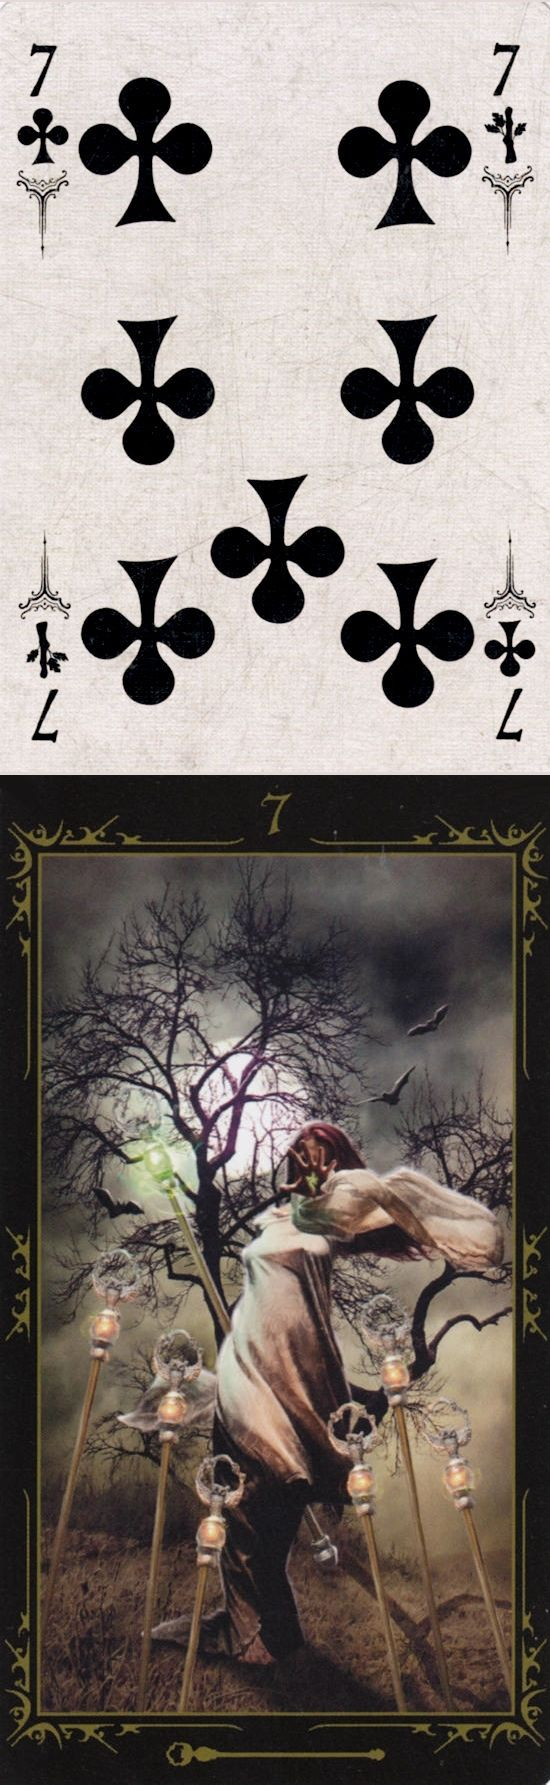 Seven of Wands: defensive and feeling overwhelmed (reverse). Arcana Tarot Tarot deck and Dark Fairytale Tarot deck: tarot marseille, tarot nano starter kit and tarot card reading libra. Best 2017 tarot decks for sale and oracles eye.